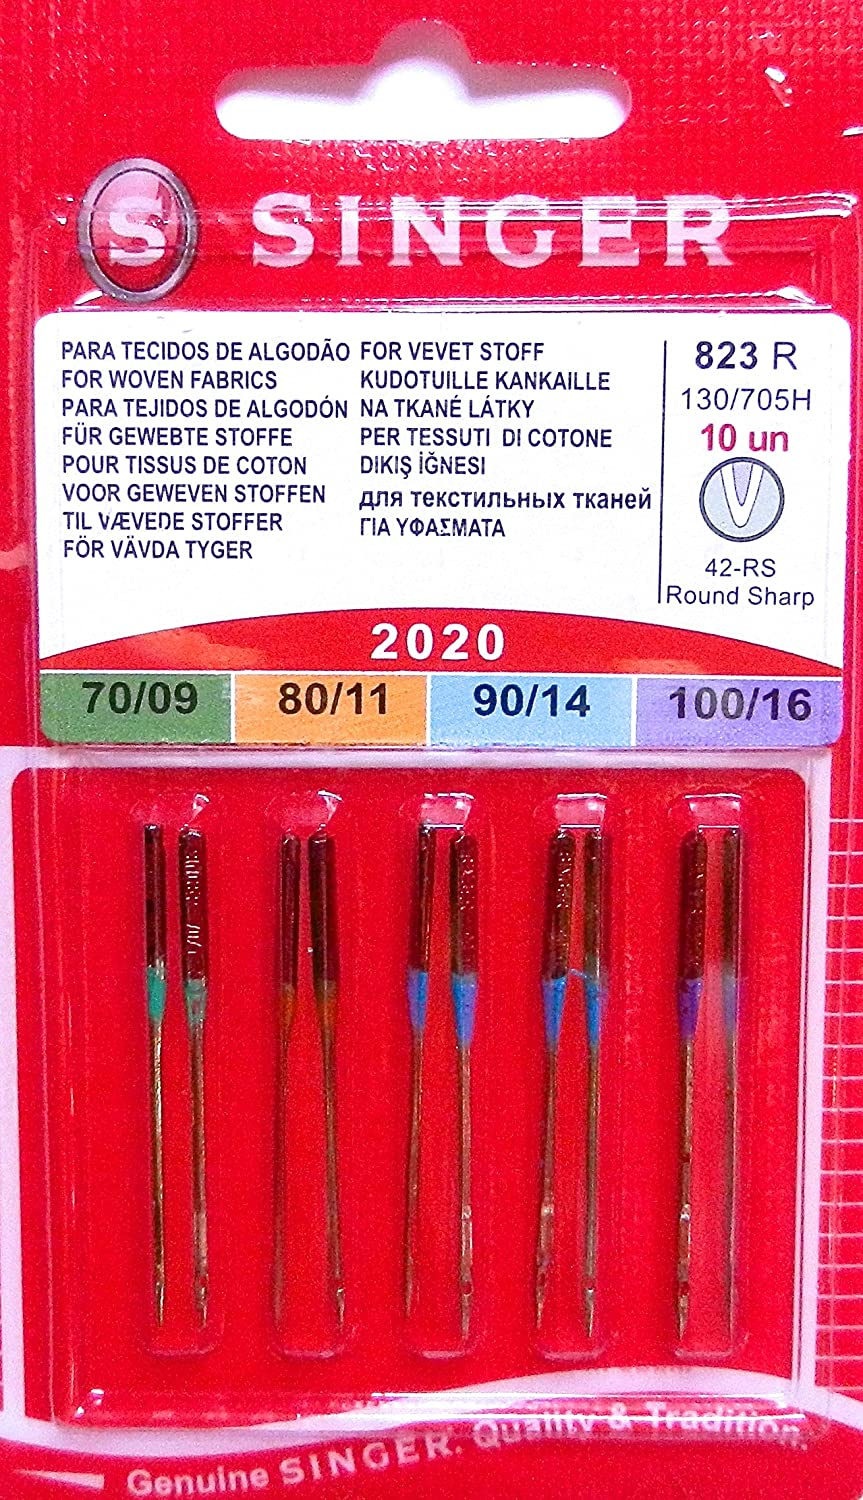 bergère de france GENUINE Singer 2020 Standard Needles For Woven uksewing. com Pack of 10 Distrifil 42153